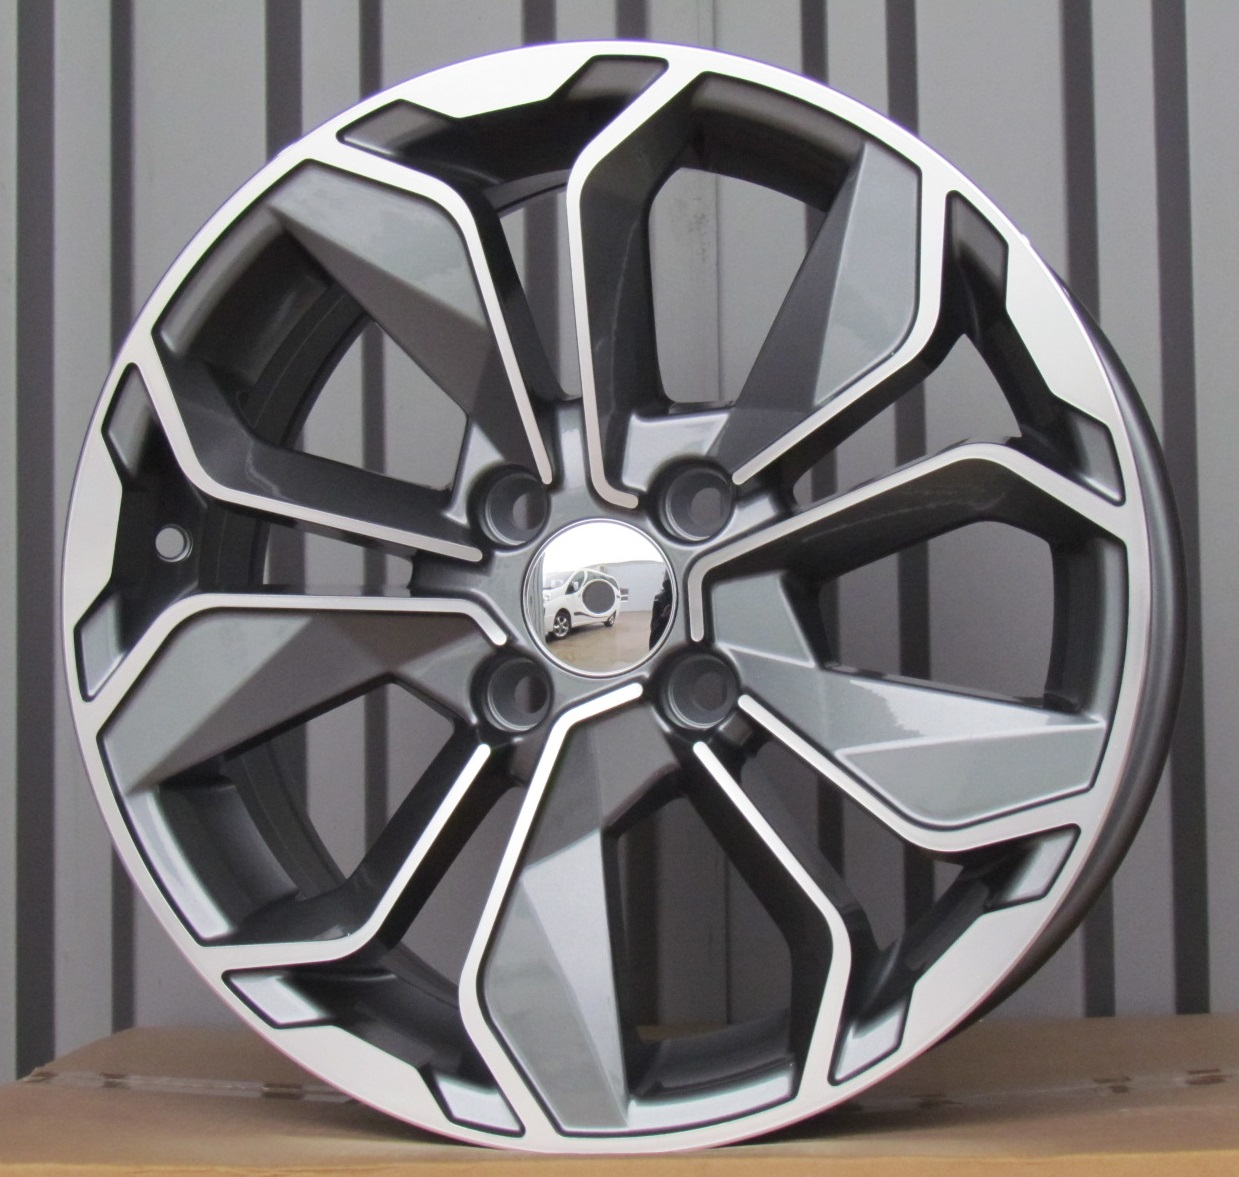 R15X6.5 4X100 ET38 60.1 BK5296 MG+POWDER COATING RWR Renault (+2eur) (R) 6.5x15 ET39 4x100